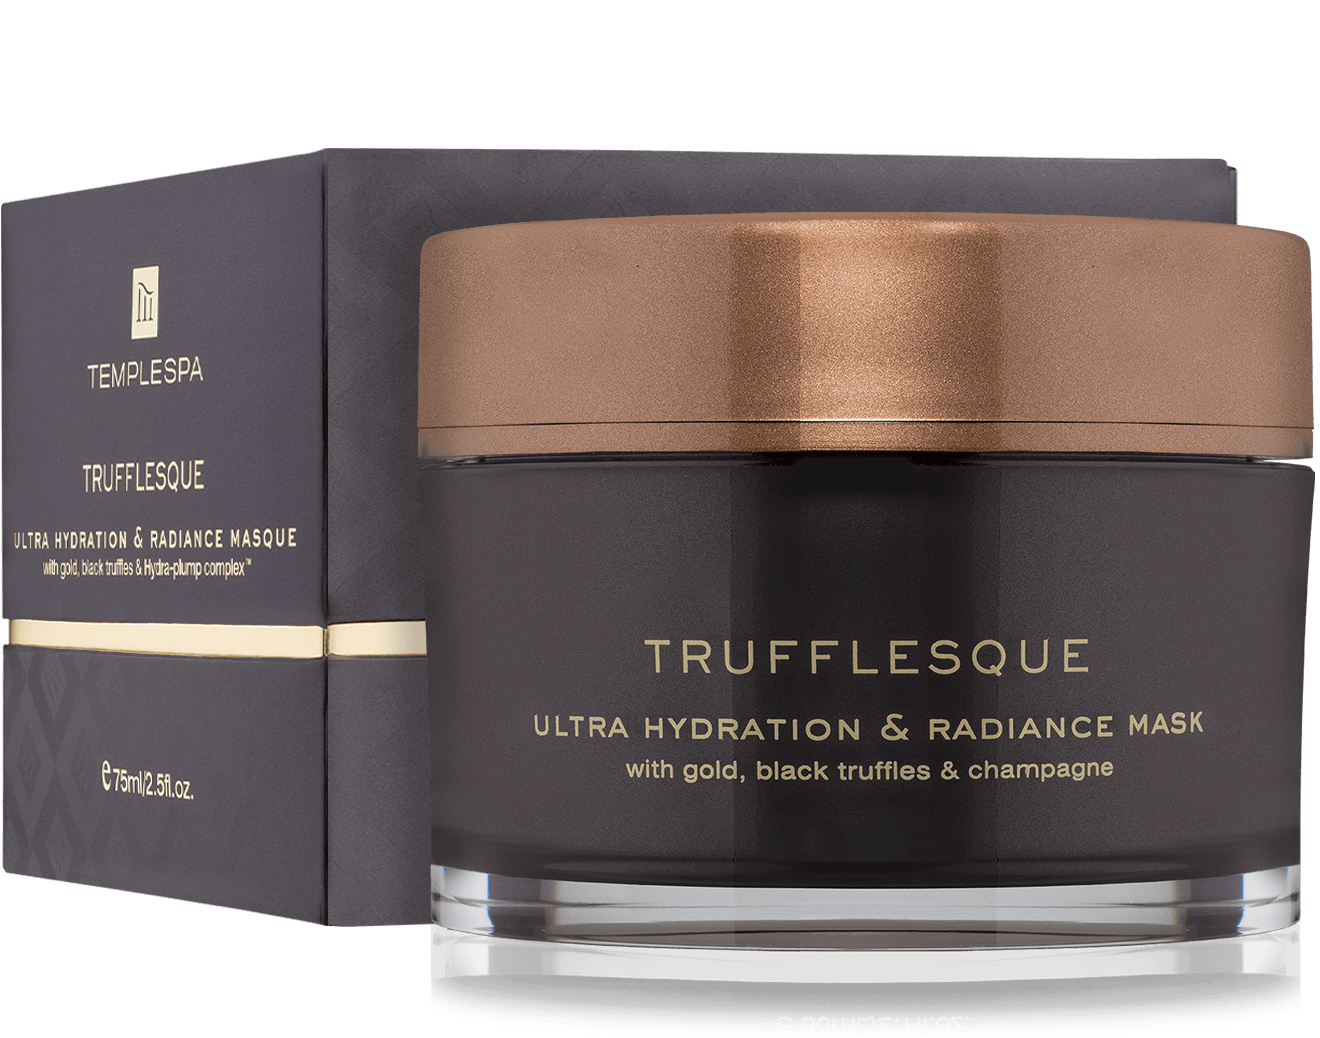 trufflesque 80ml back gold face mask june 2016 het2154 carton side